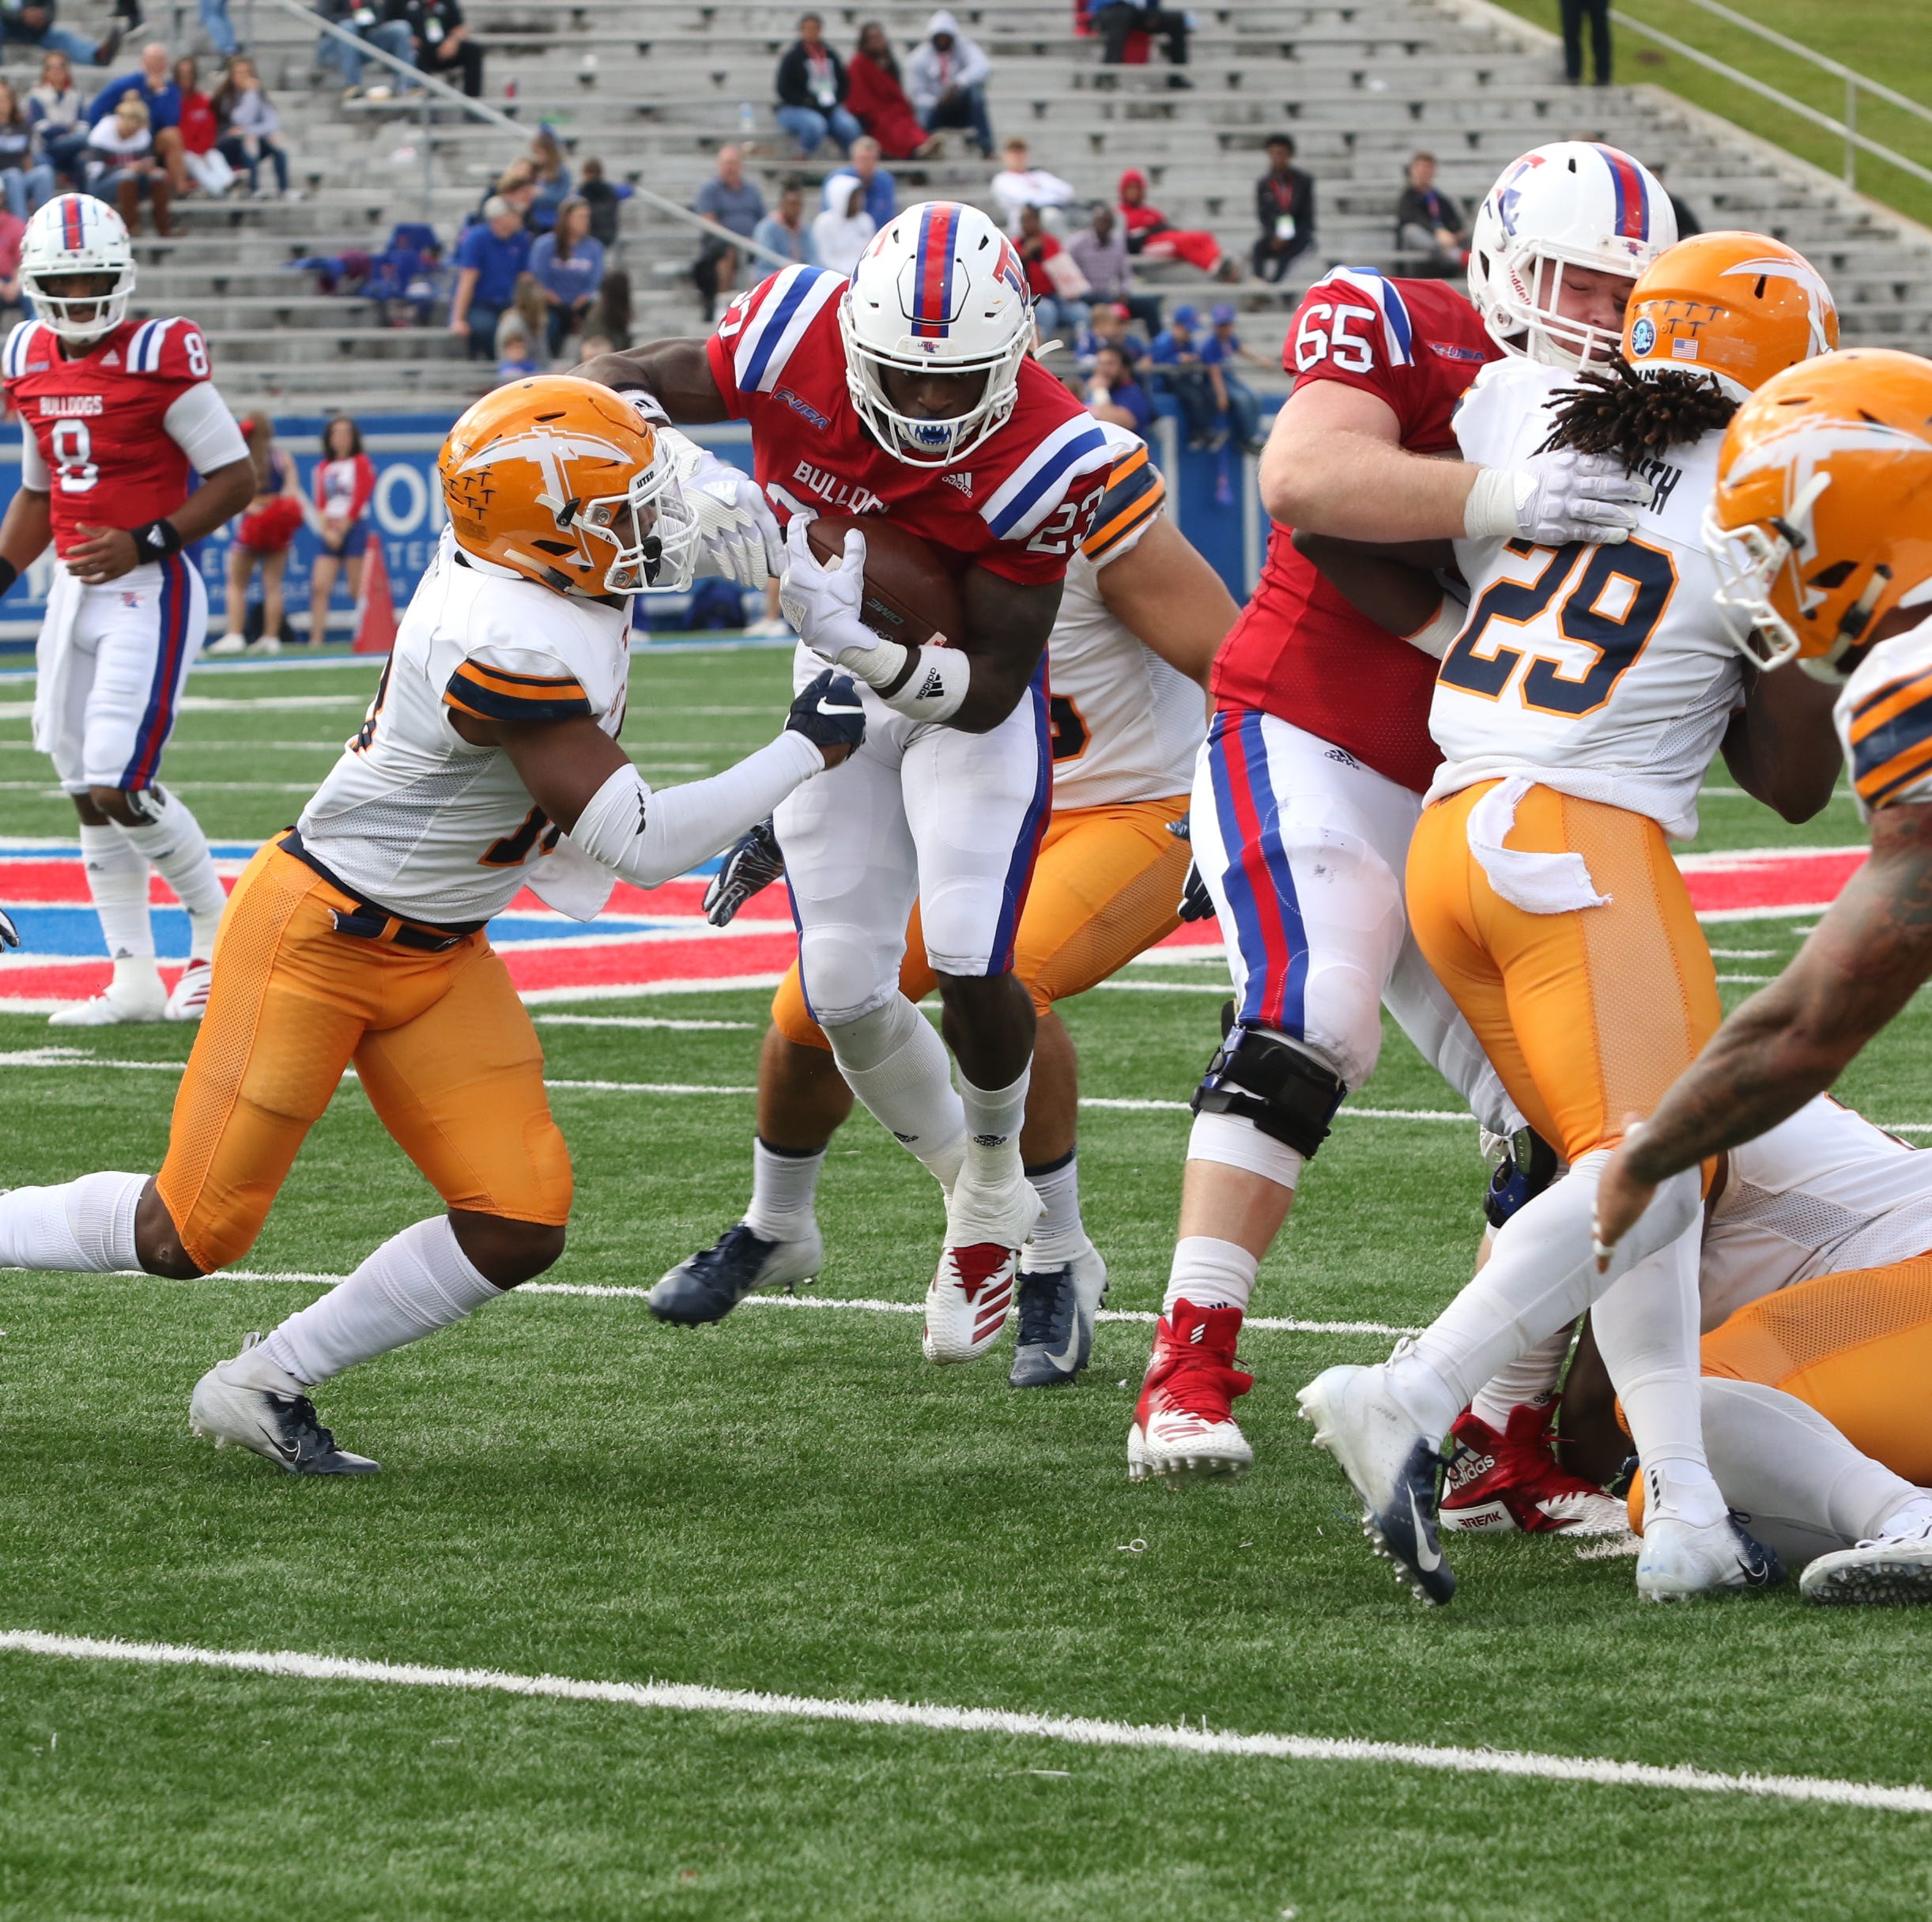 Improving UTEP football still unlucky, but end of losing streak looms ahead for Miners